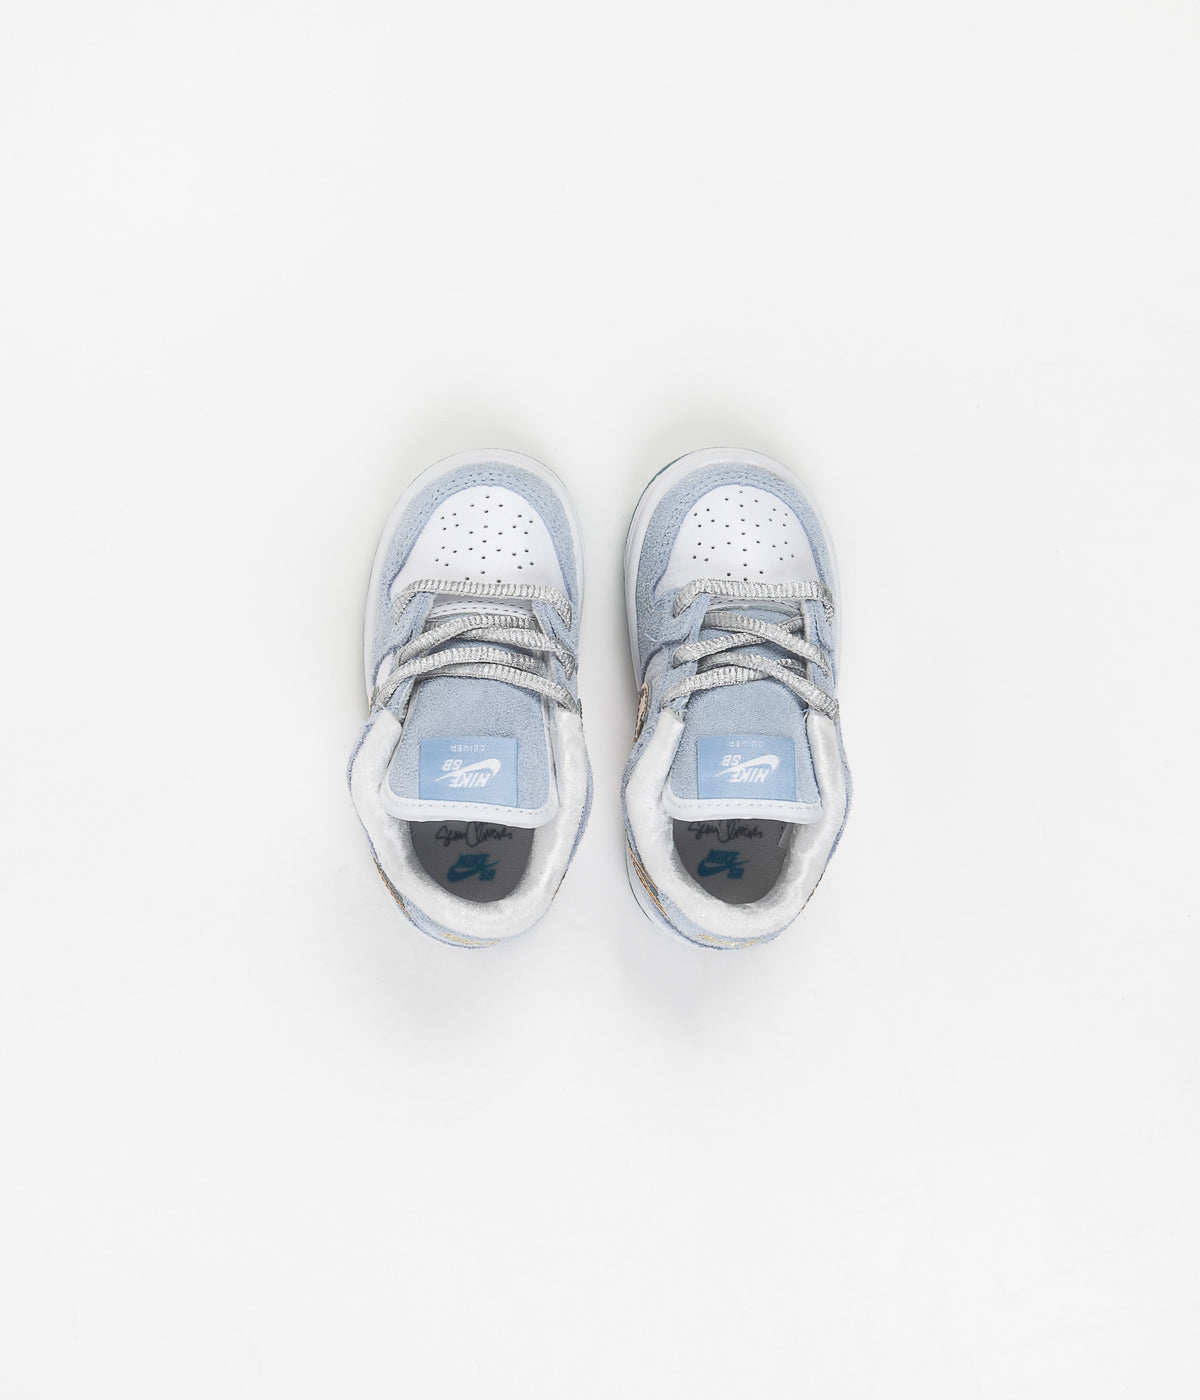 Nike SB x Sean Cliver Dunk Low Toddler Shoes - Psychic Blue / Metallic Gold - White